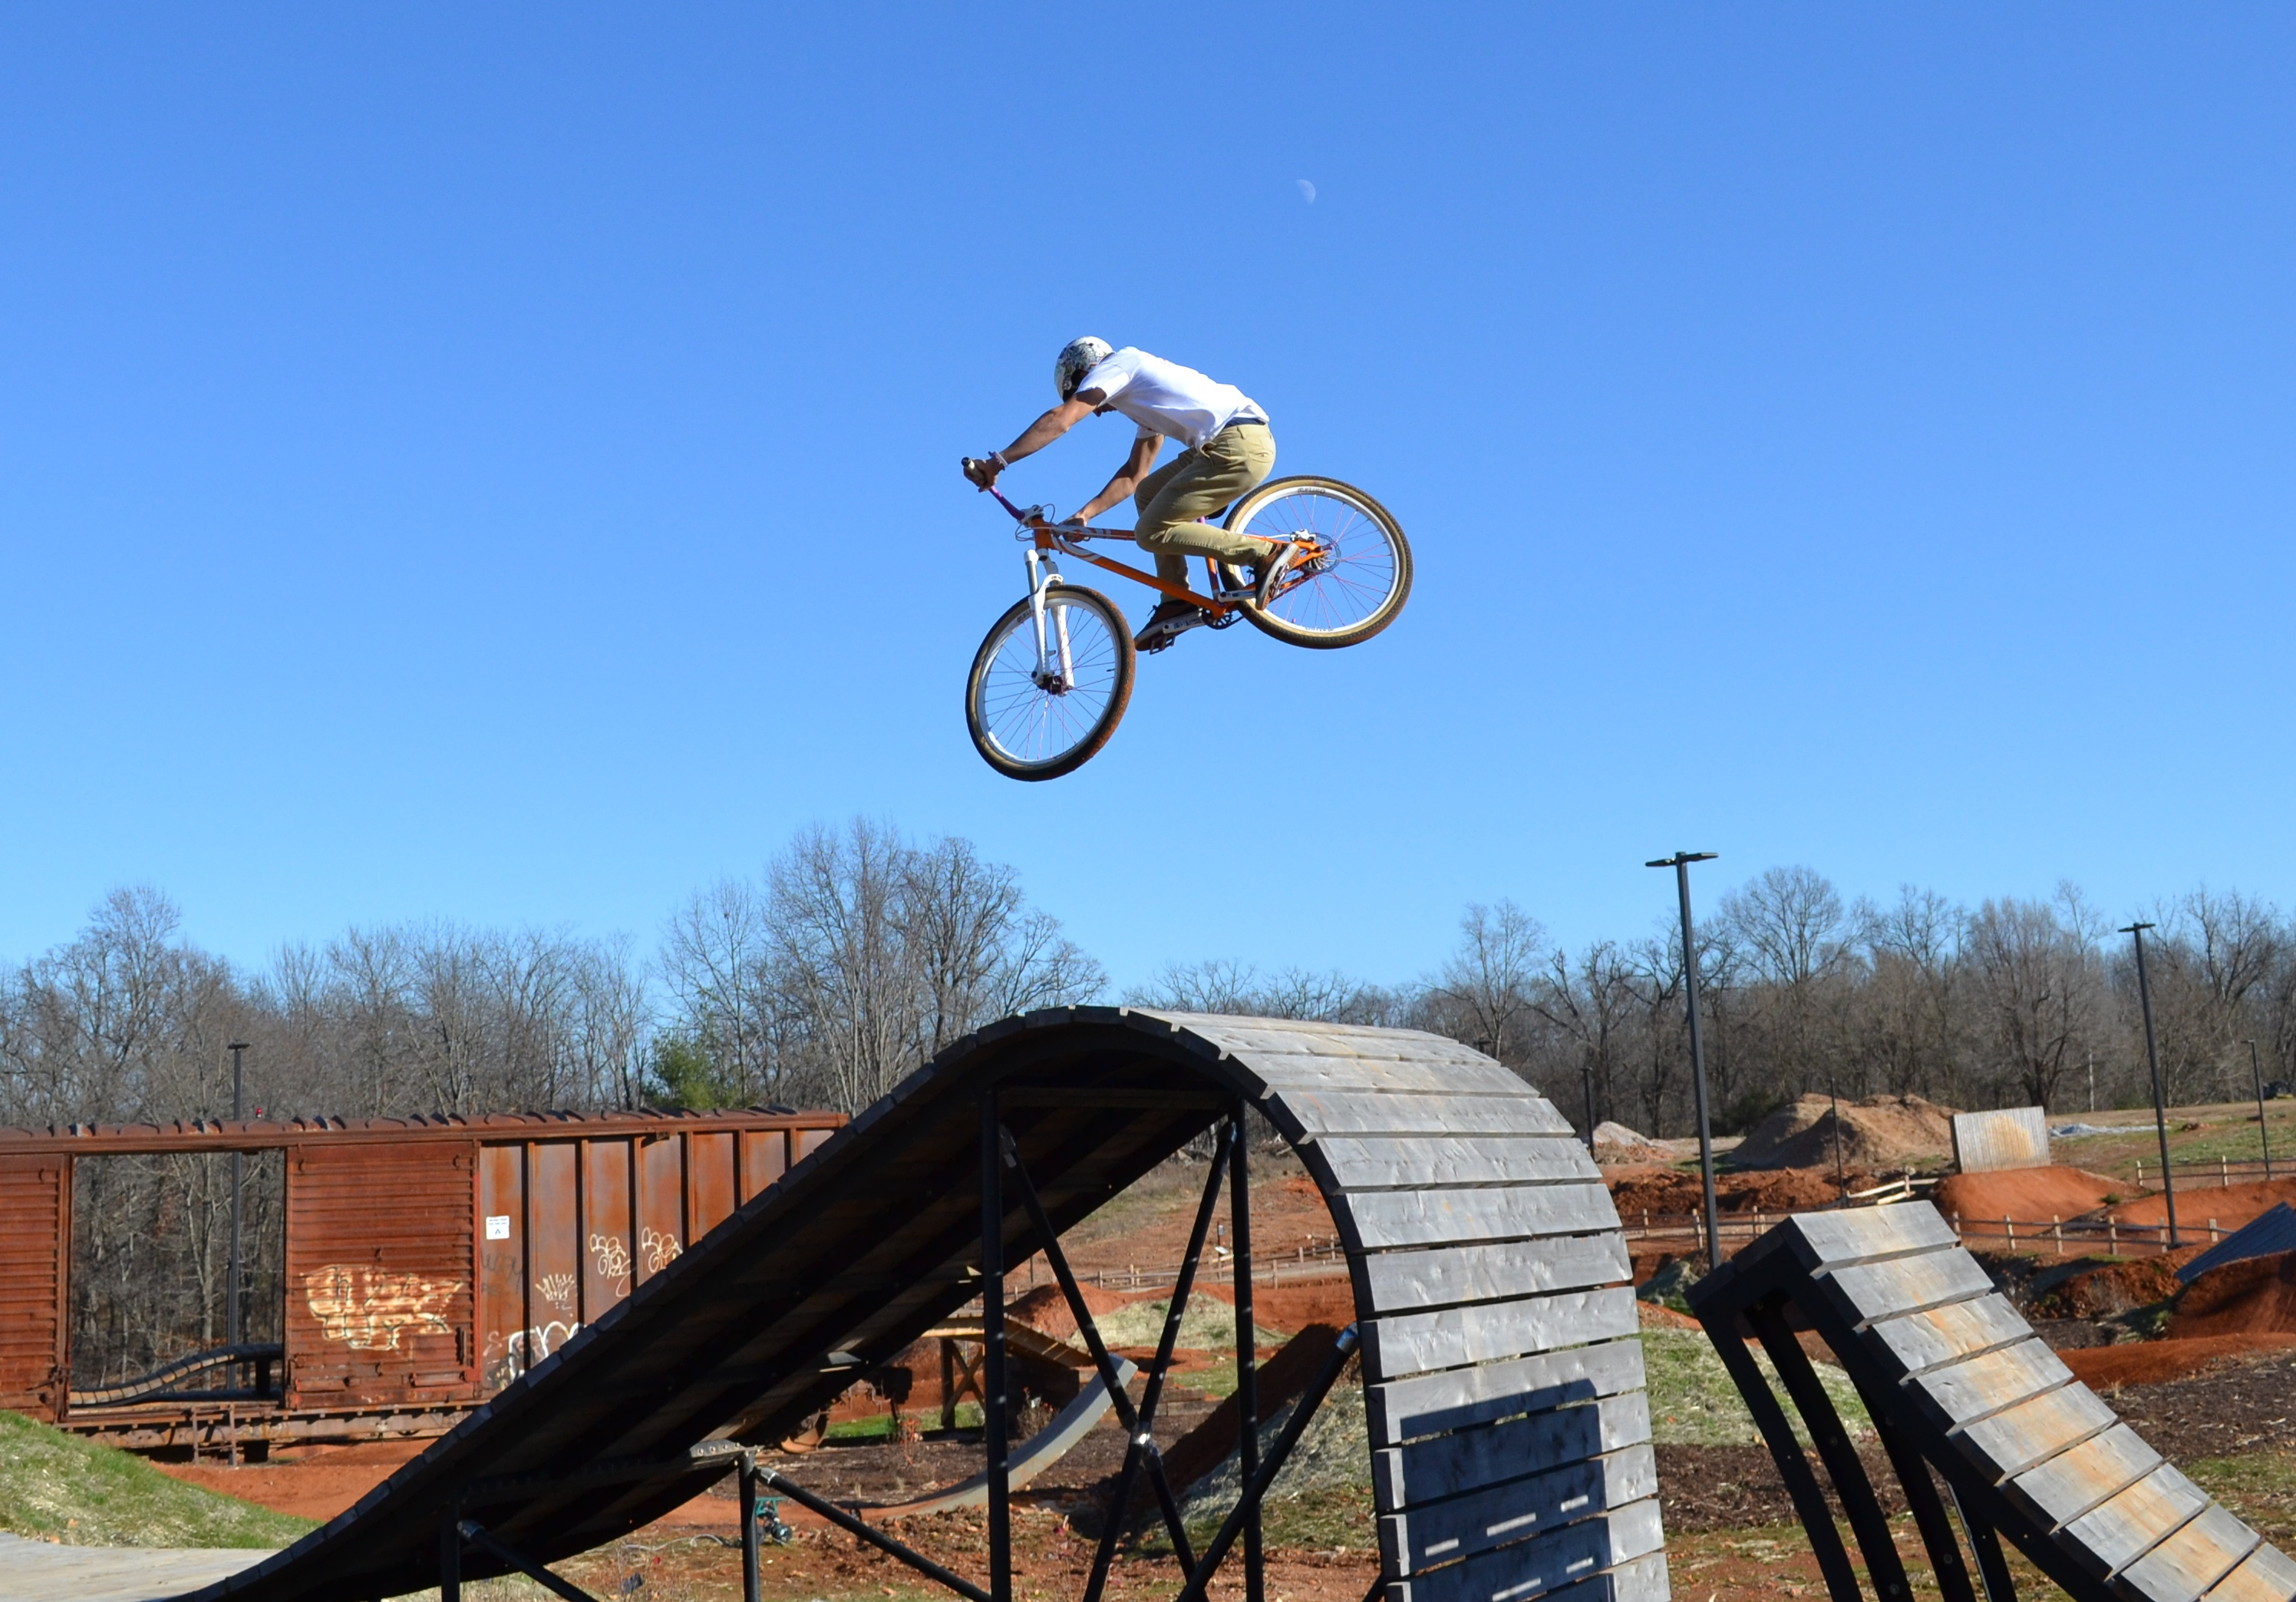 Railyard_Bike_Park_004